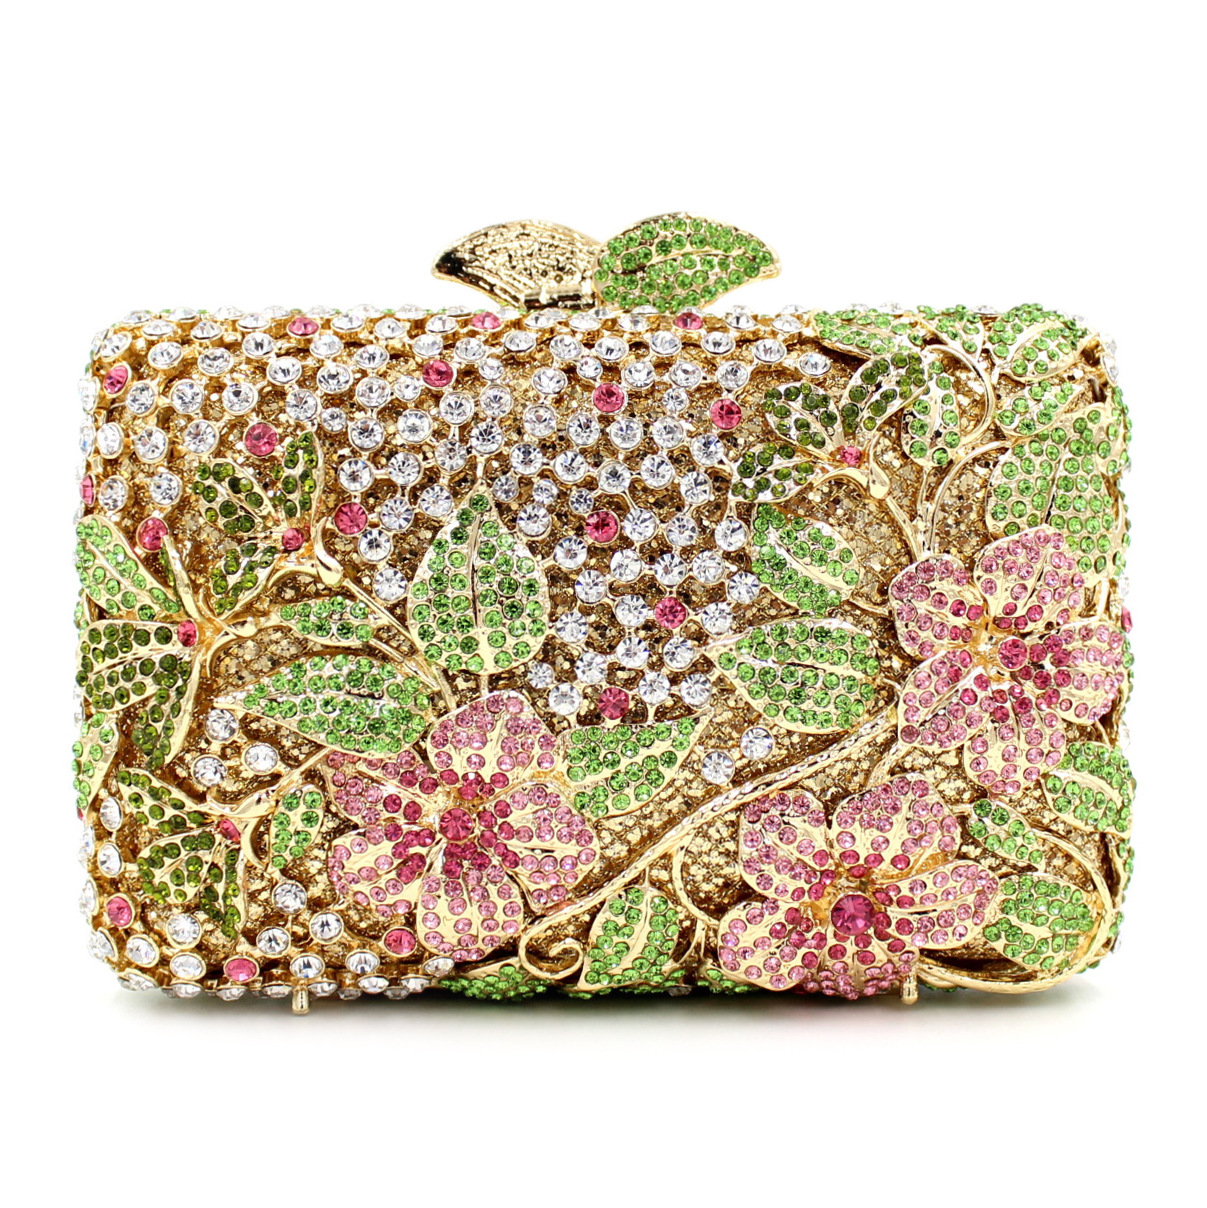 Both Side Handmade Diamond Flower Crystal Evening Bag Clutch Bags Upscale Styling party Day Clutches Lady Wedding mini Purse europe new upscale butterfly diamond evening bag full diamond party handbag clutch